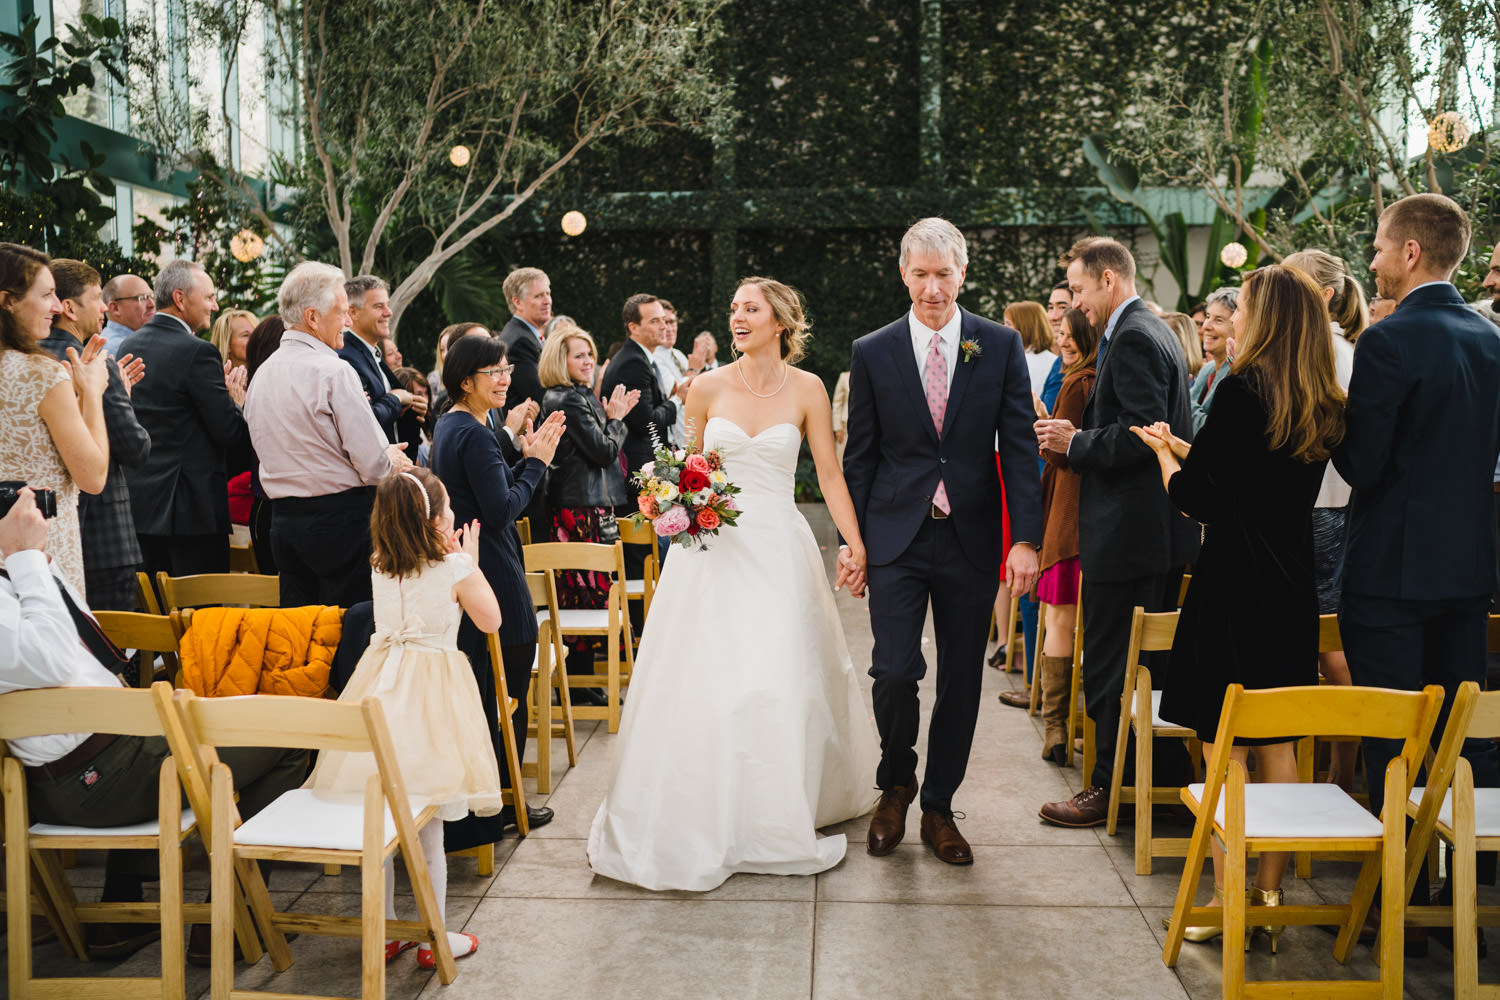 Red Butte Garden wedding bride and groom exiting ceremony down aisle photo